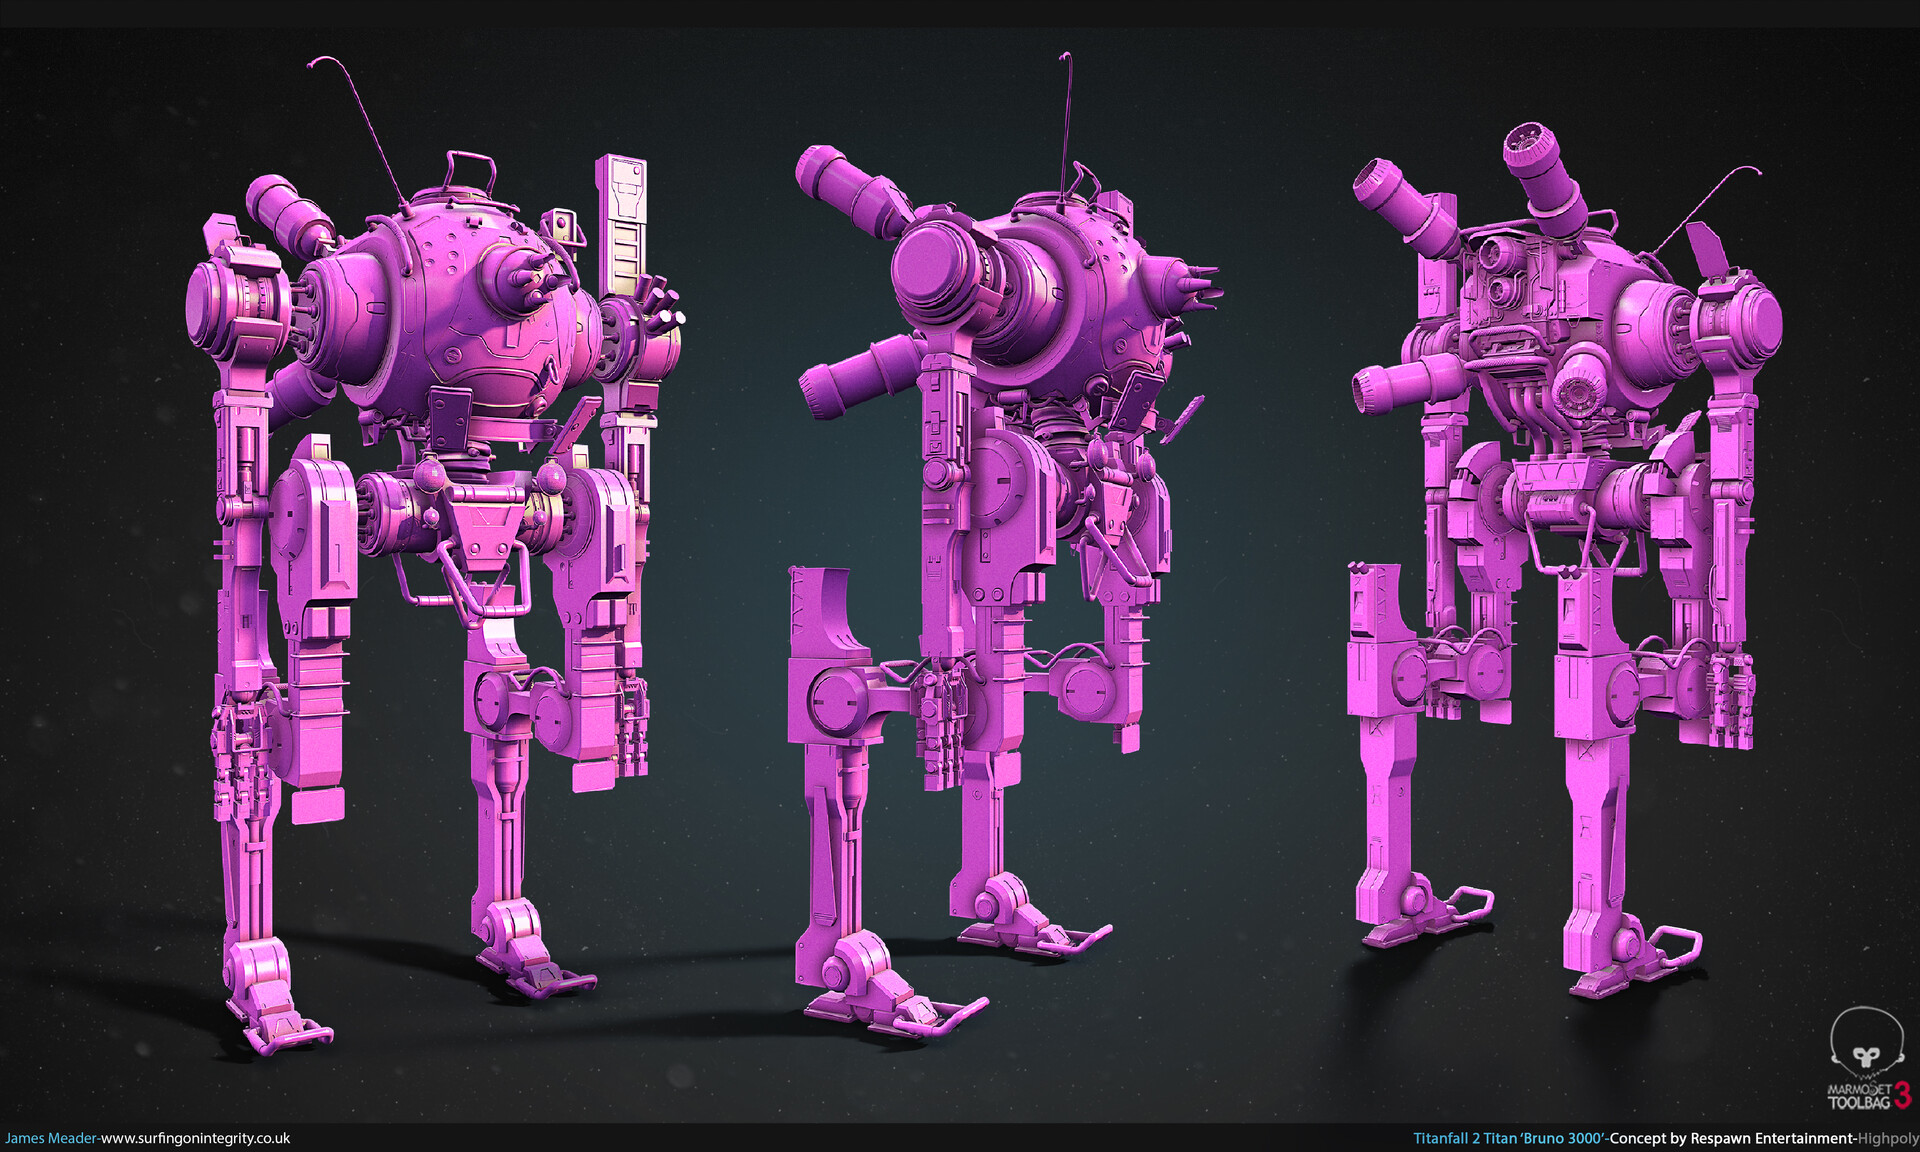 James meader titanfall 2 titan bruno 3000 final highpoly